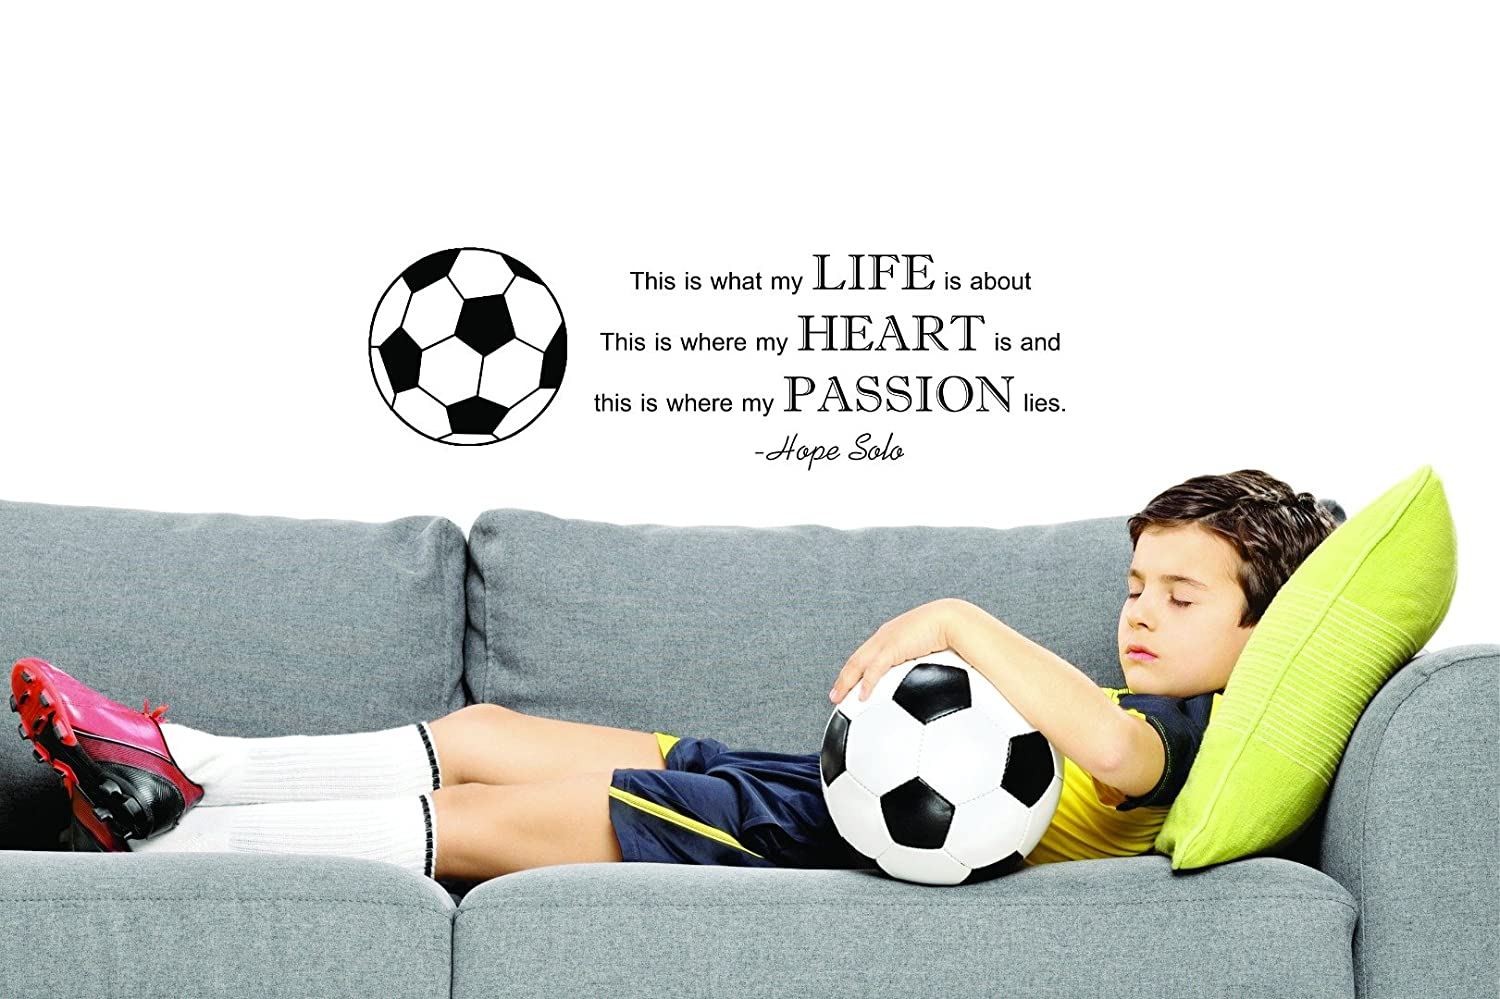 Black Hope Solo Quote Soccer Sports Vinyl Wall Decal Sticker Design with Vinyl JER 309 1 This is What My Life is About Where My Heart is /& Where My Passion Lies 10 x 20